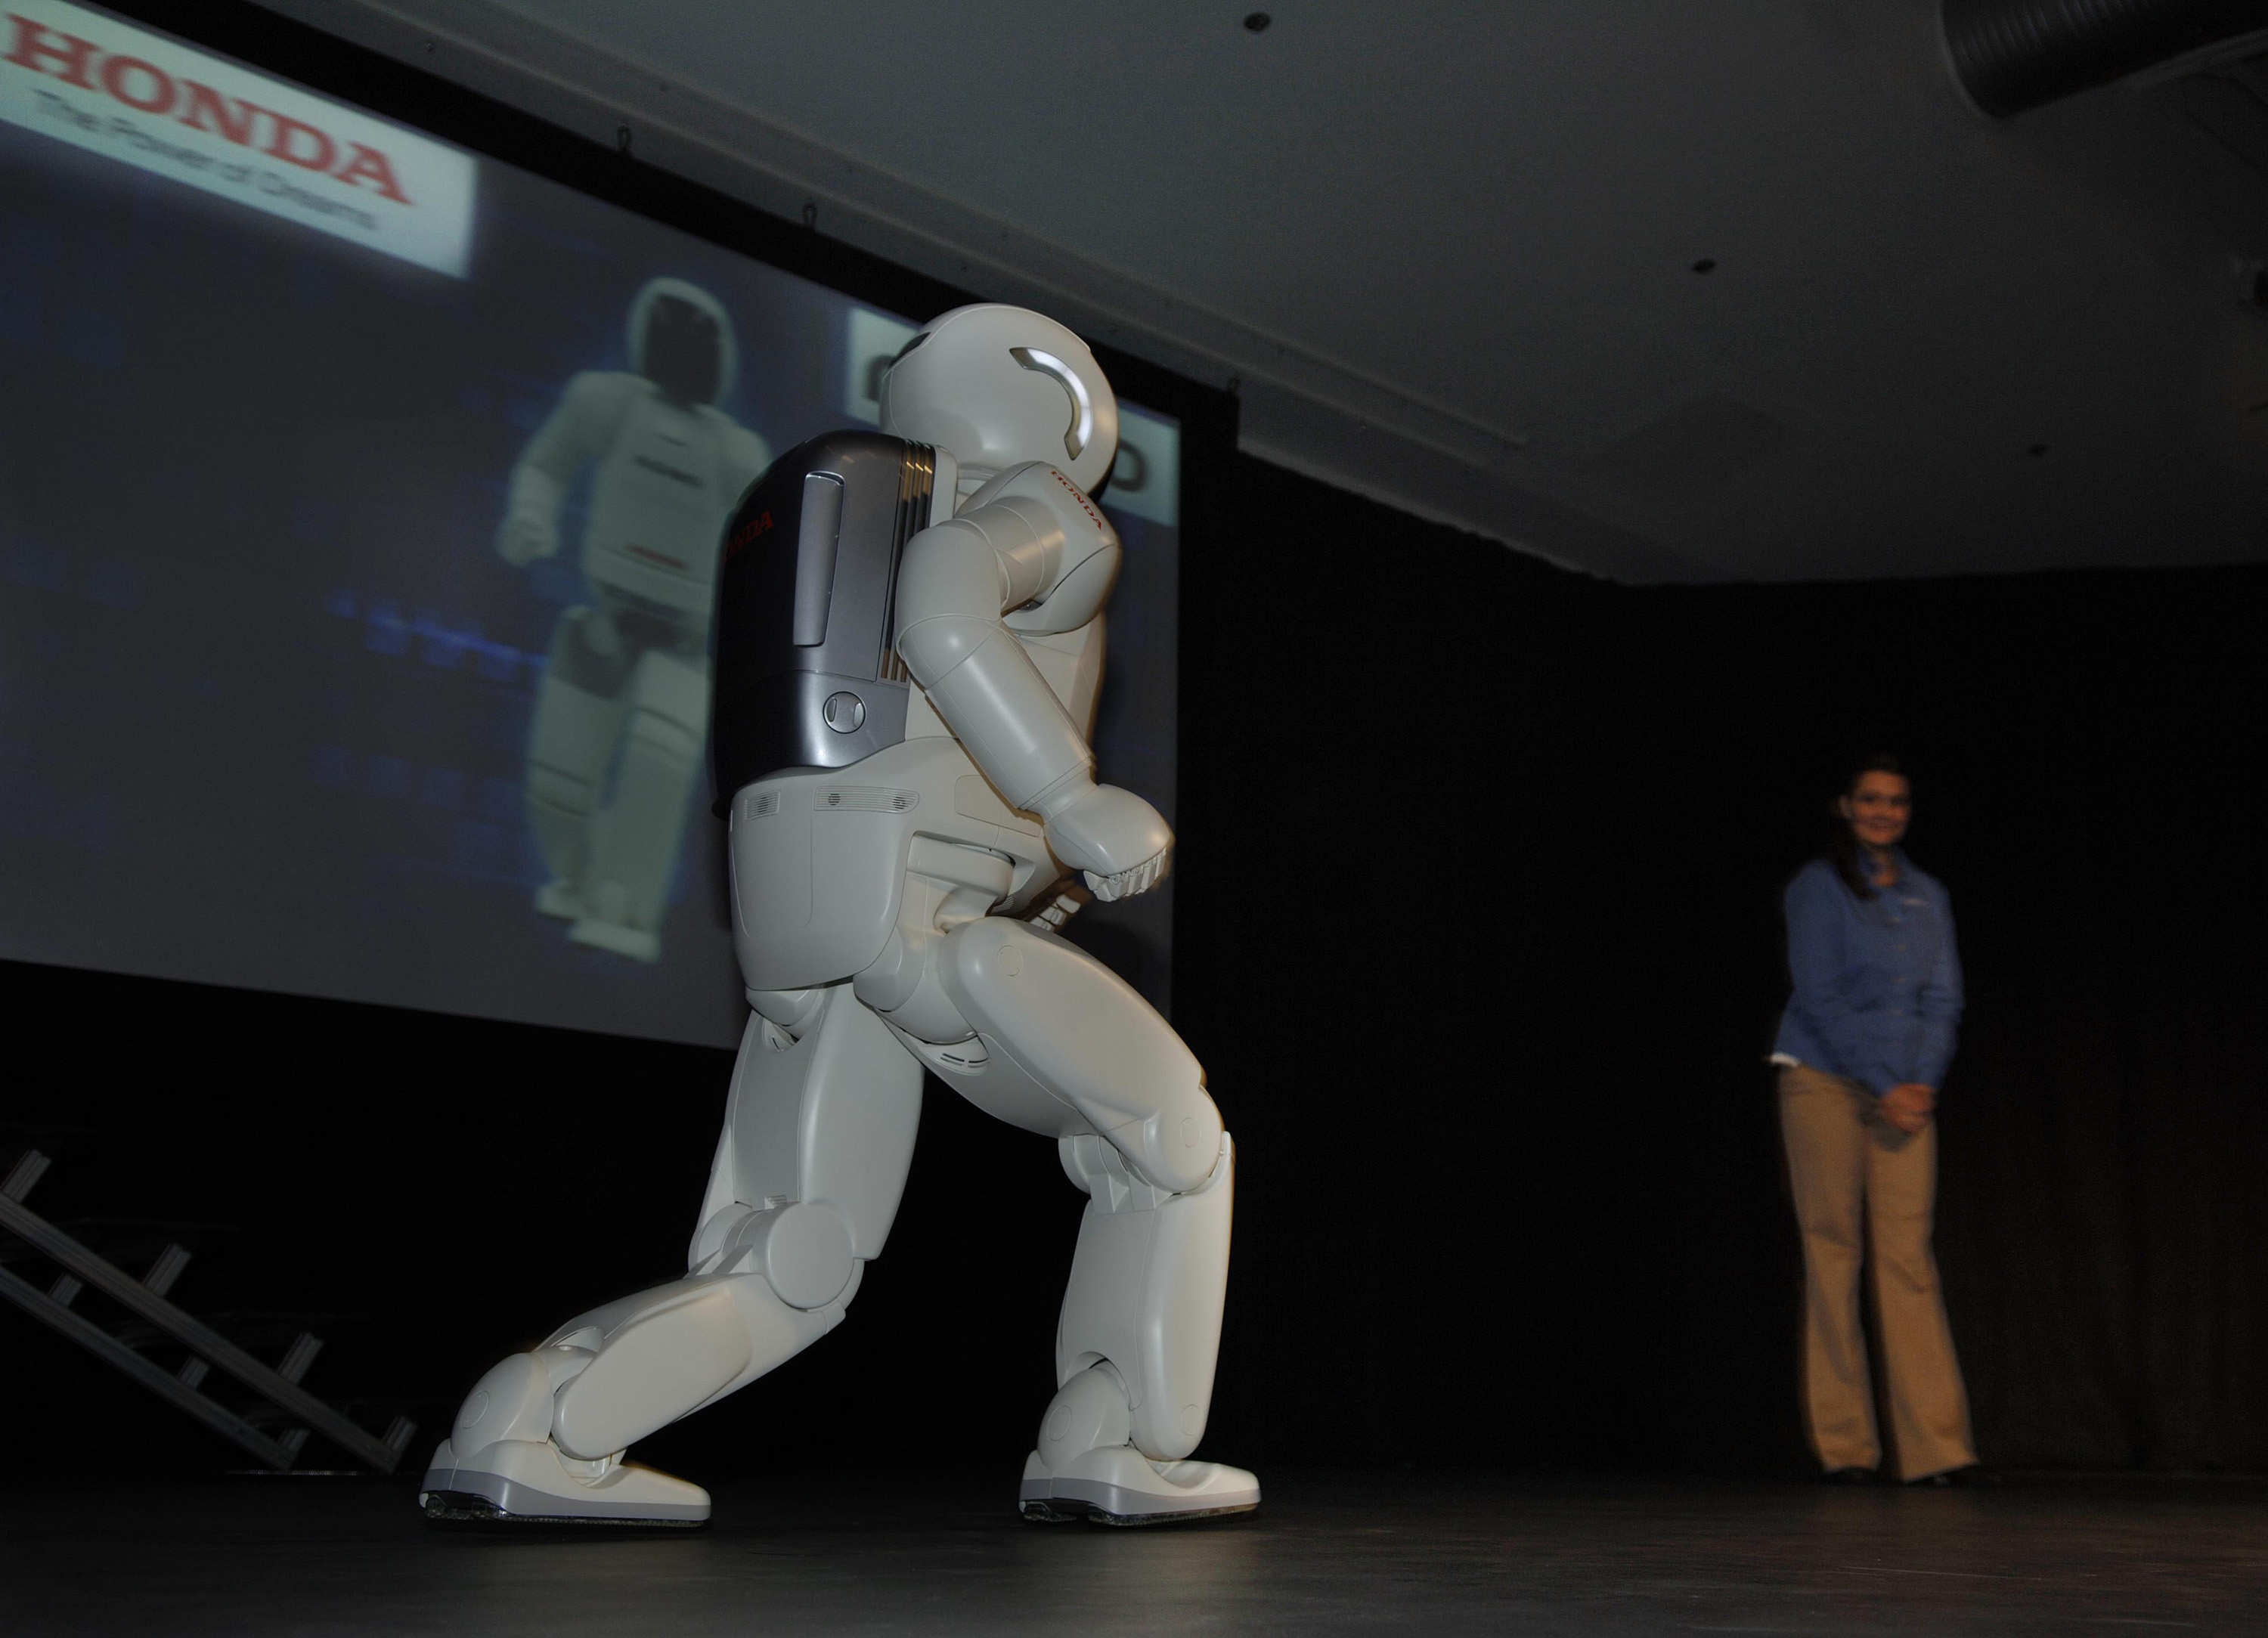 ASIMO demonstrated its latest mobility, including running, at the Honda Initiation Grant's 10th Annual Technical Horizon Symposium in Mountain View, Calif. held at the Computer History Museum.